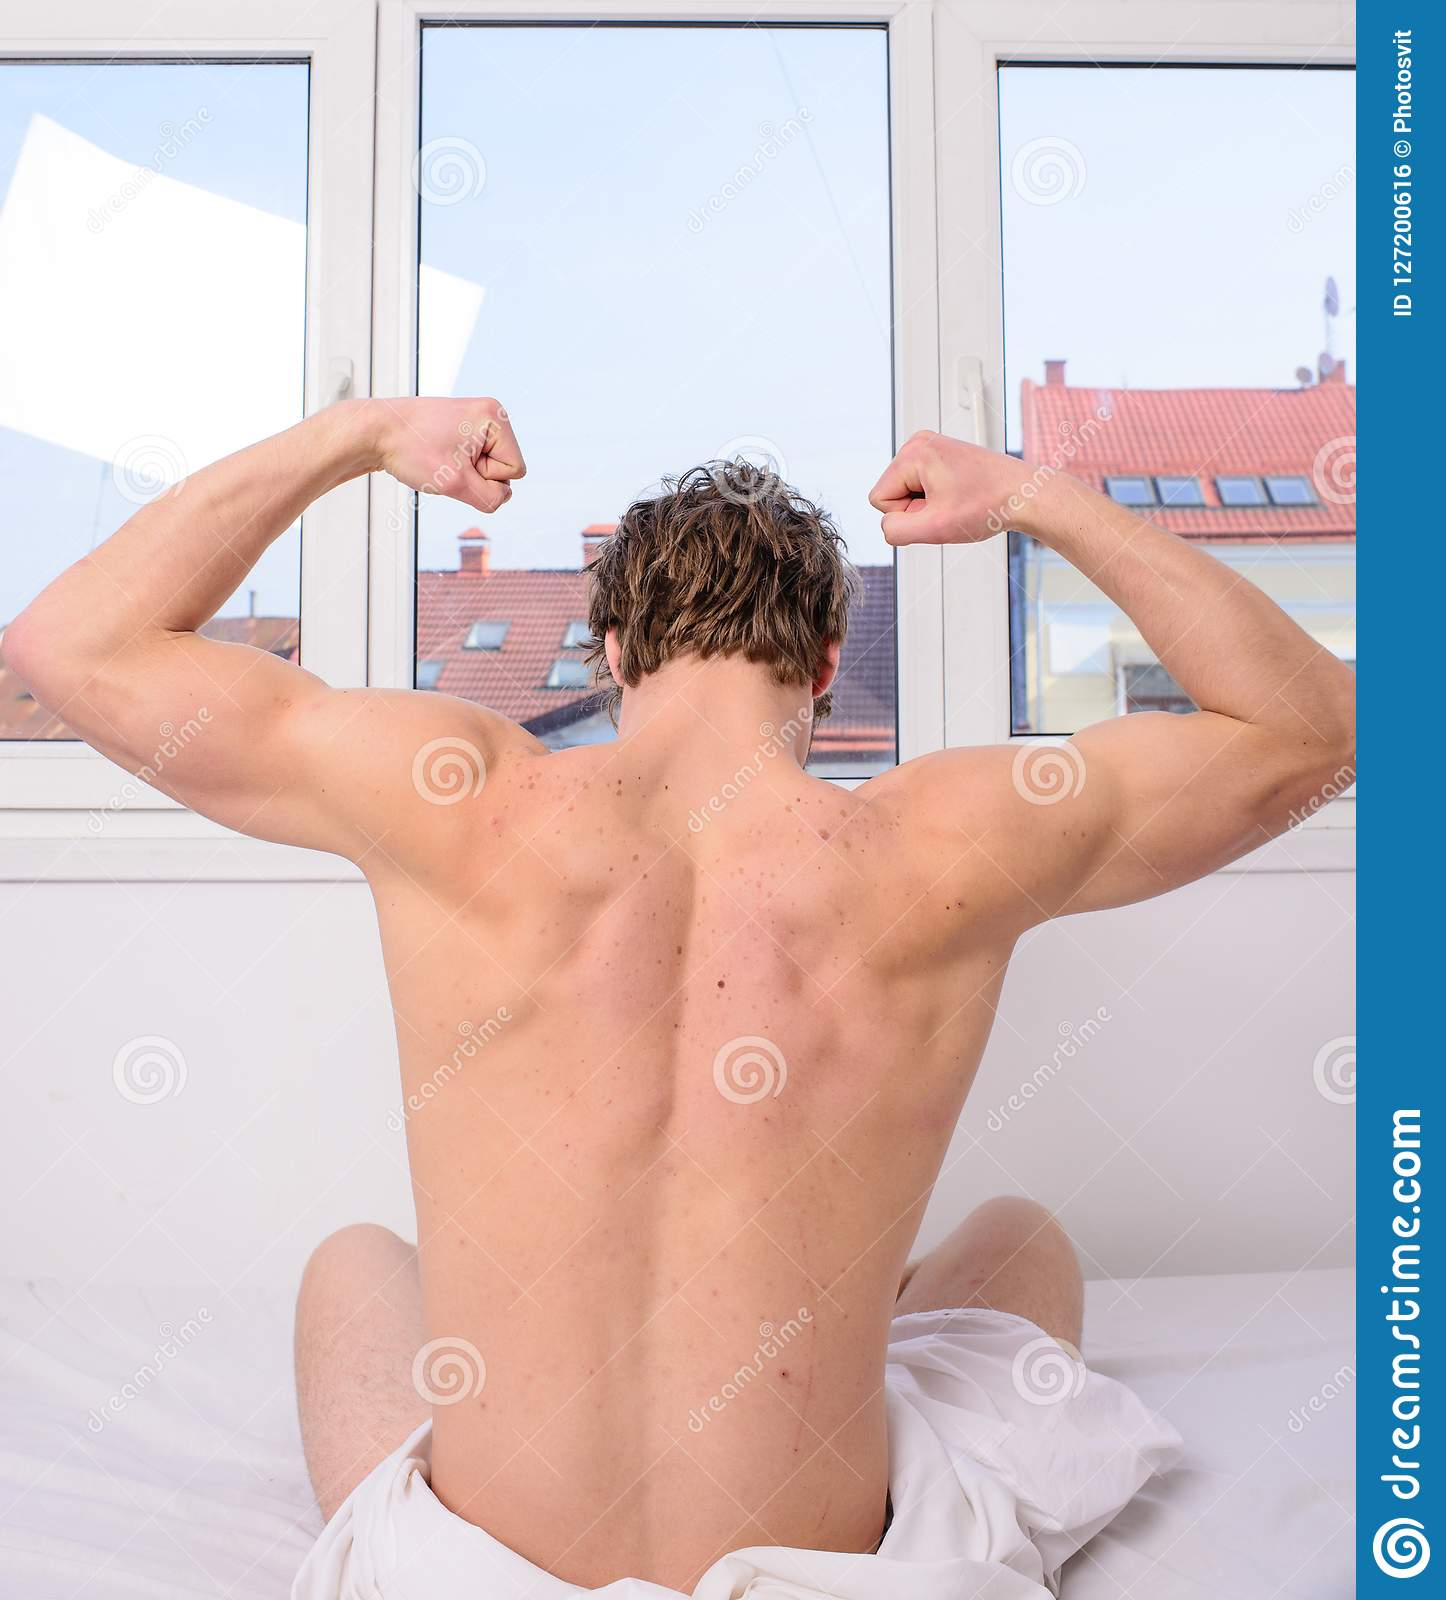 Vigorous exercise best but even light exercise better than no activity. Man muscular back stretching bed rear view. Get